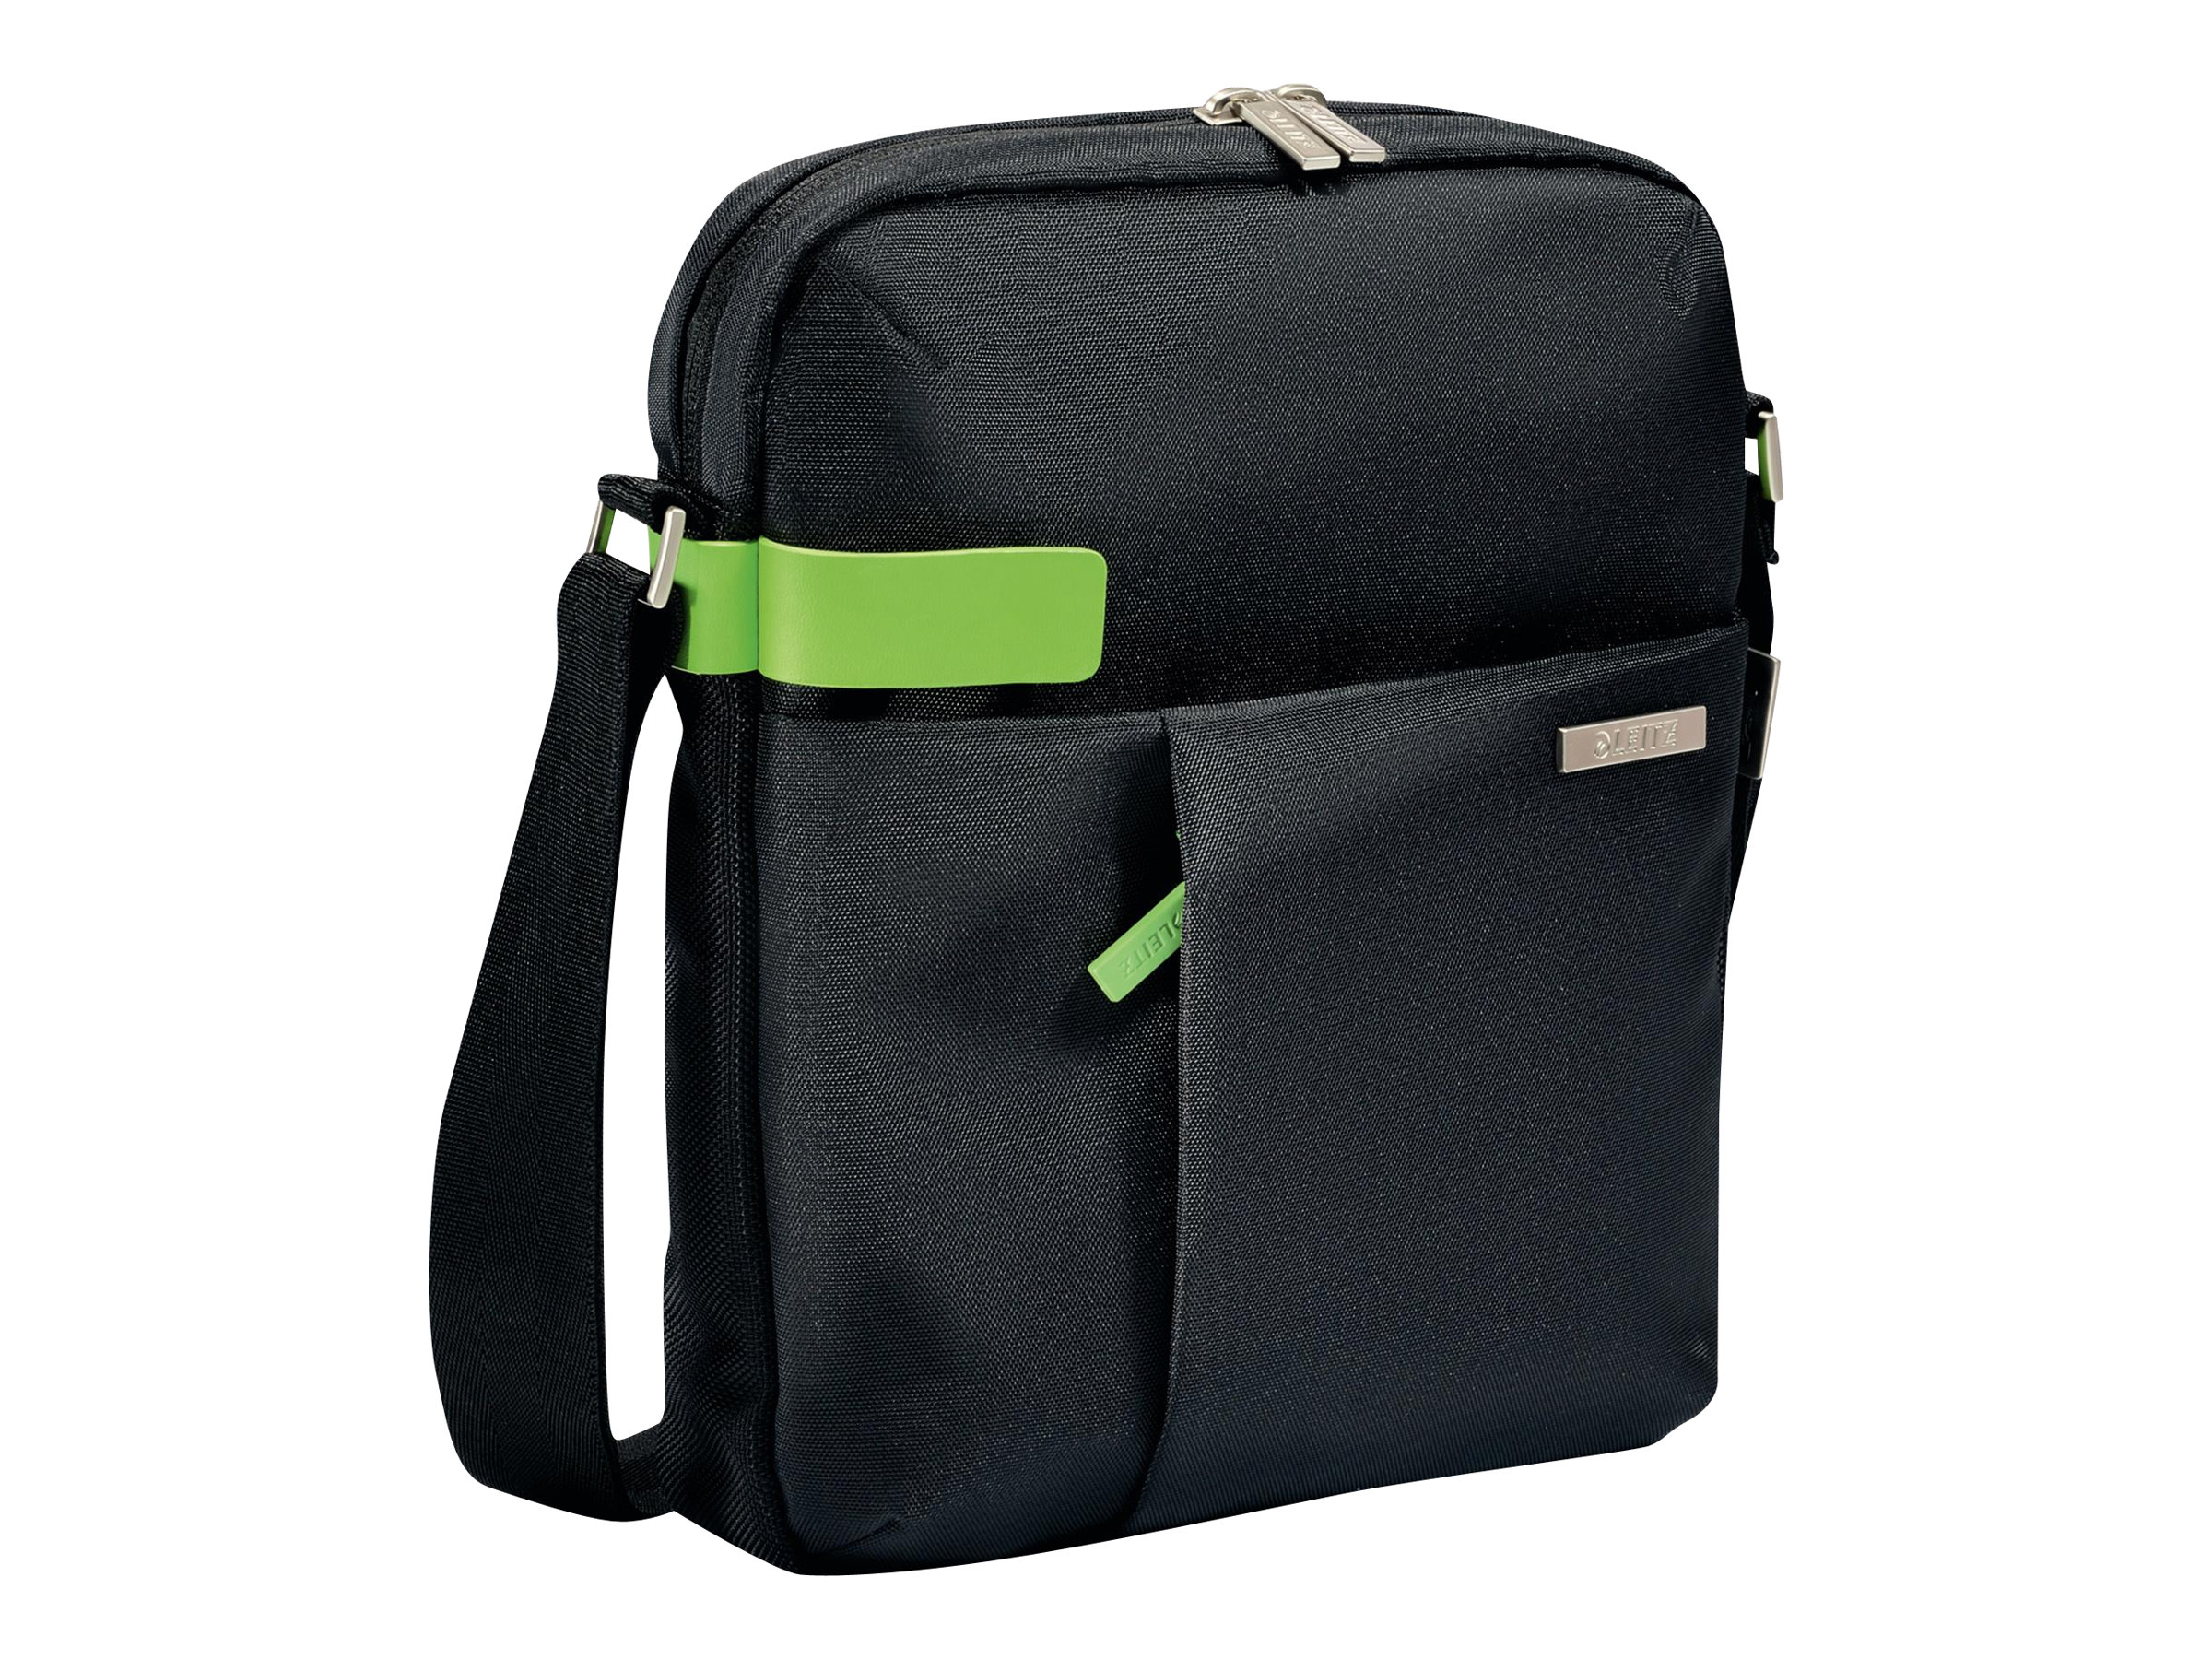 Leitz Complete Tablet Smart Traveller - Schultertasche für Tablet / eBook-Reader - Metall, Polyester - Schwarz